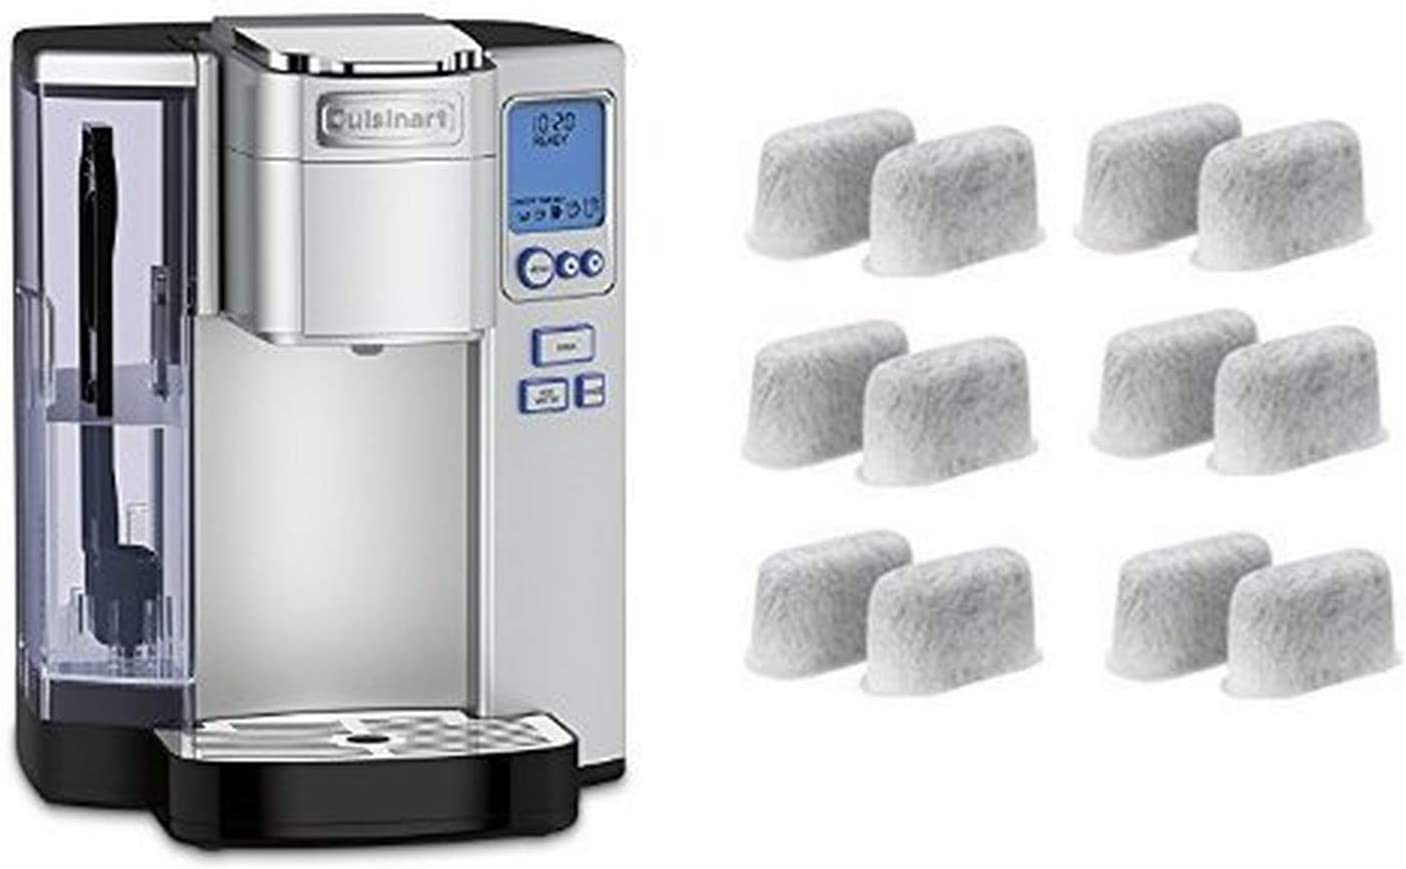 Charcoal Water Filter For Cuisinart Coffee Maker Replacement For Coffee Machines